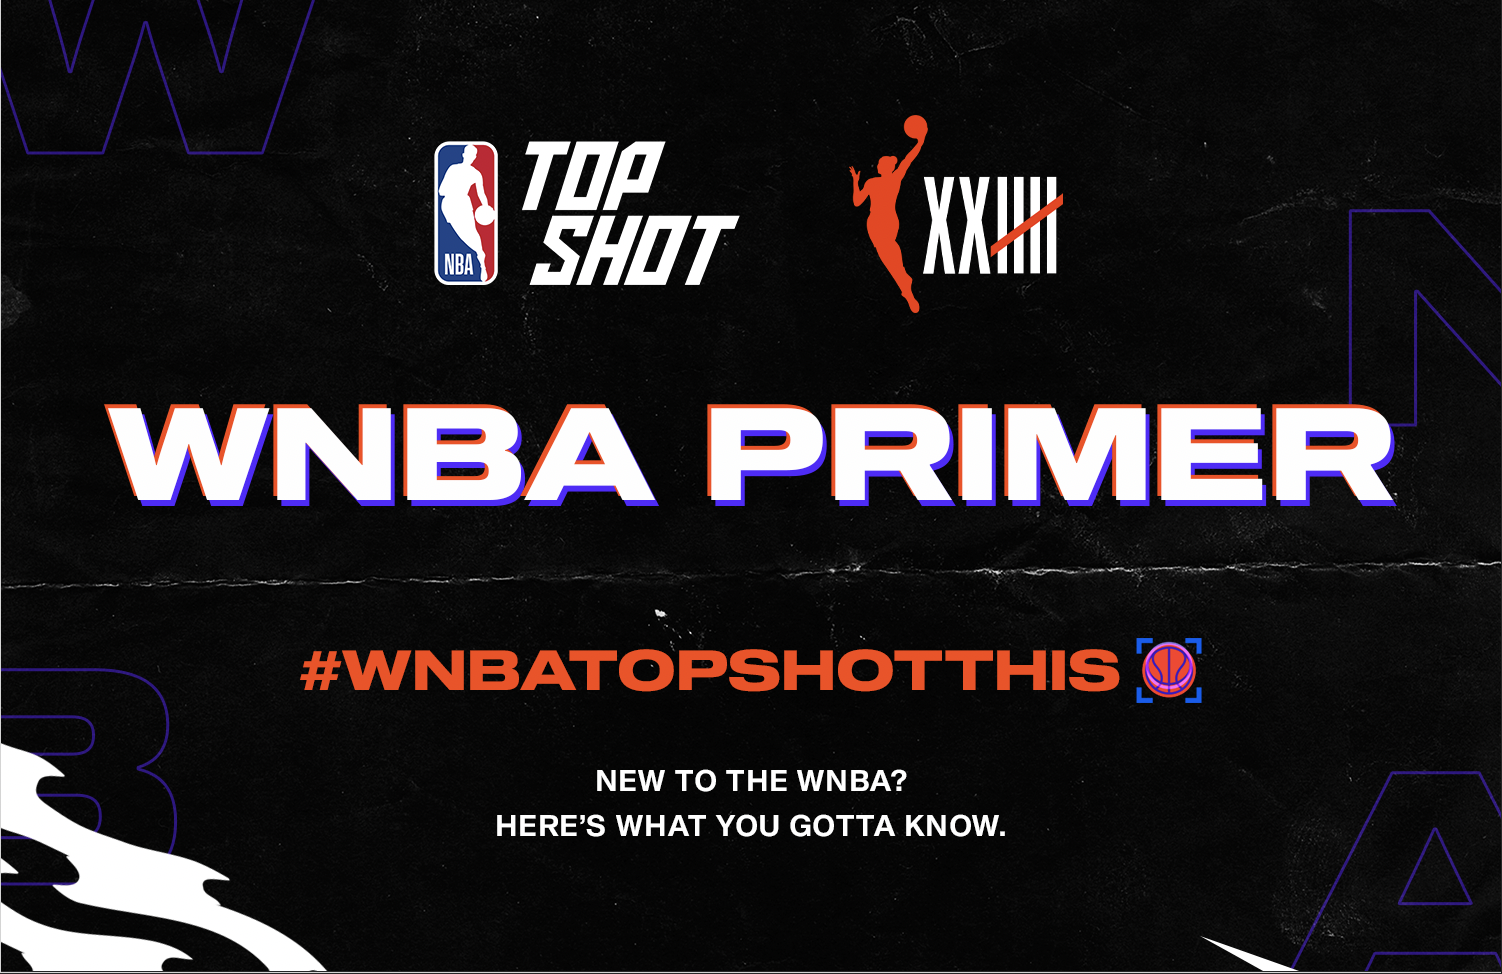 The WNBA's On Top Shot: Here's What To Know